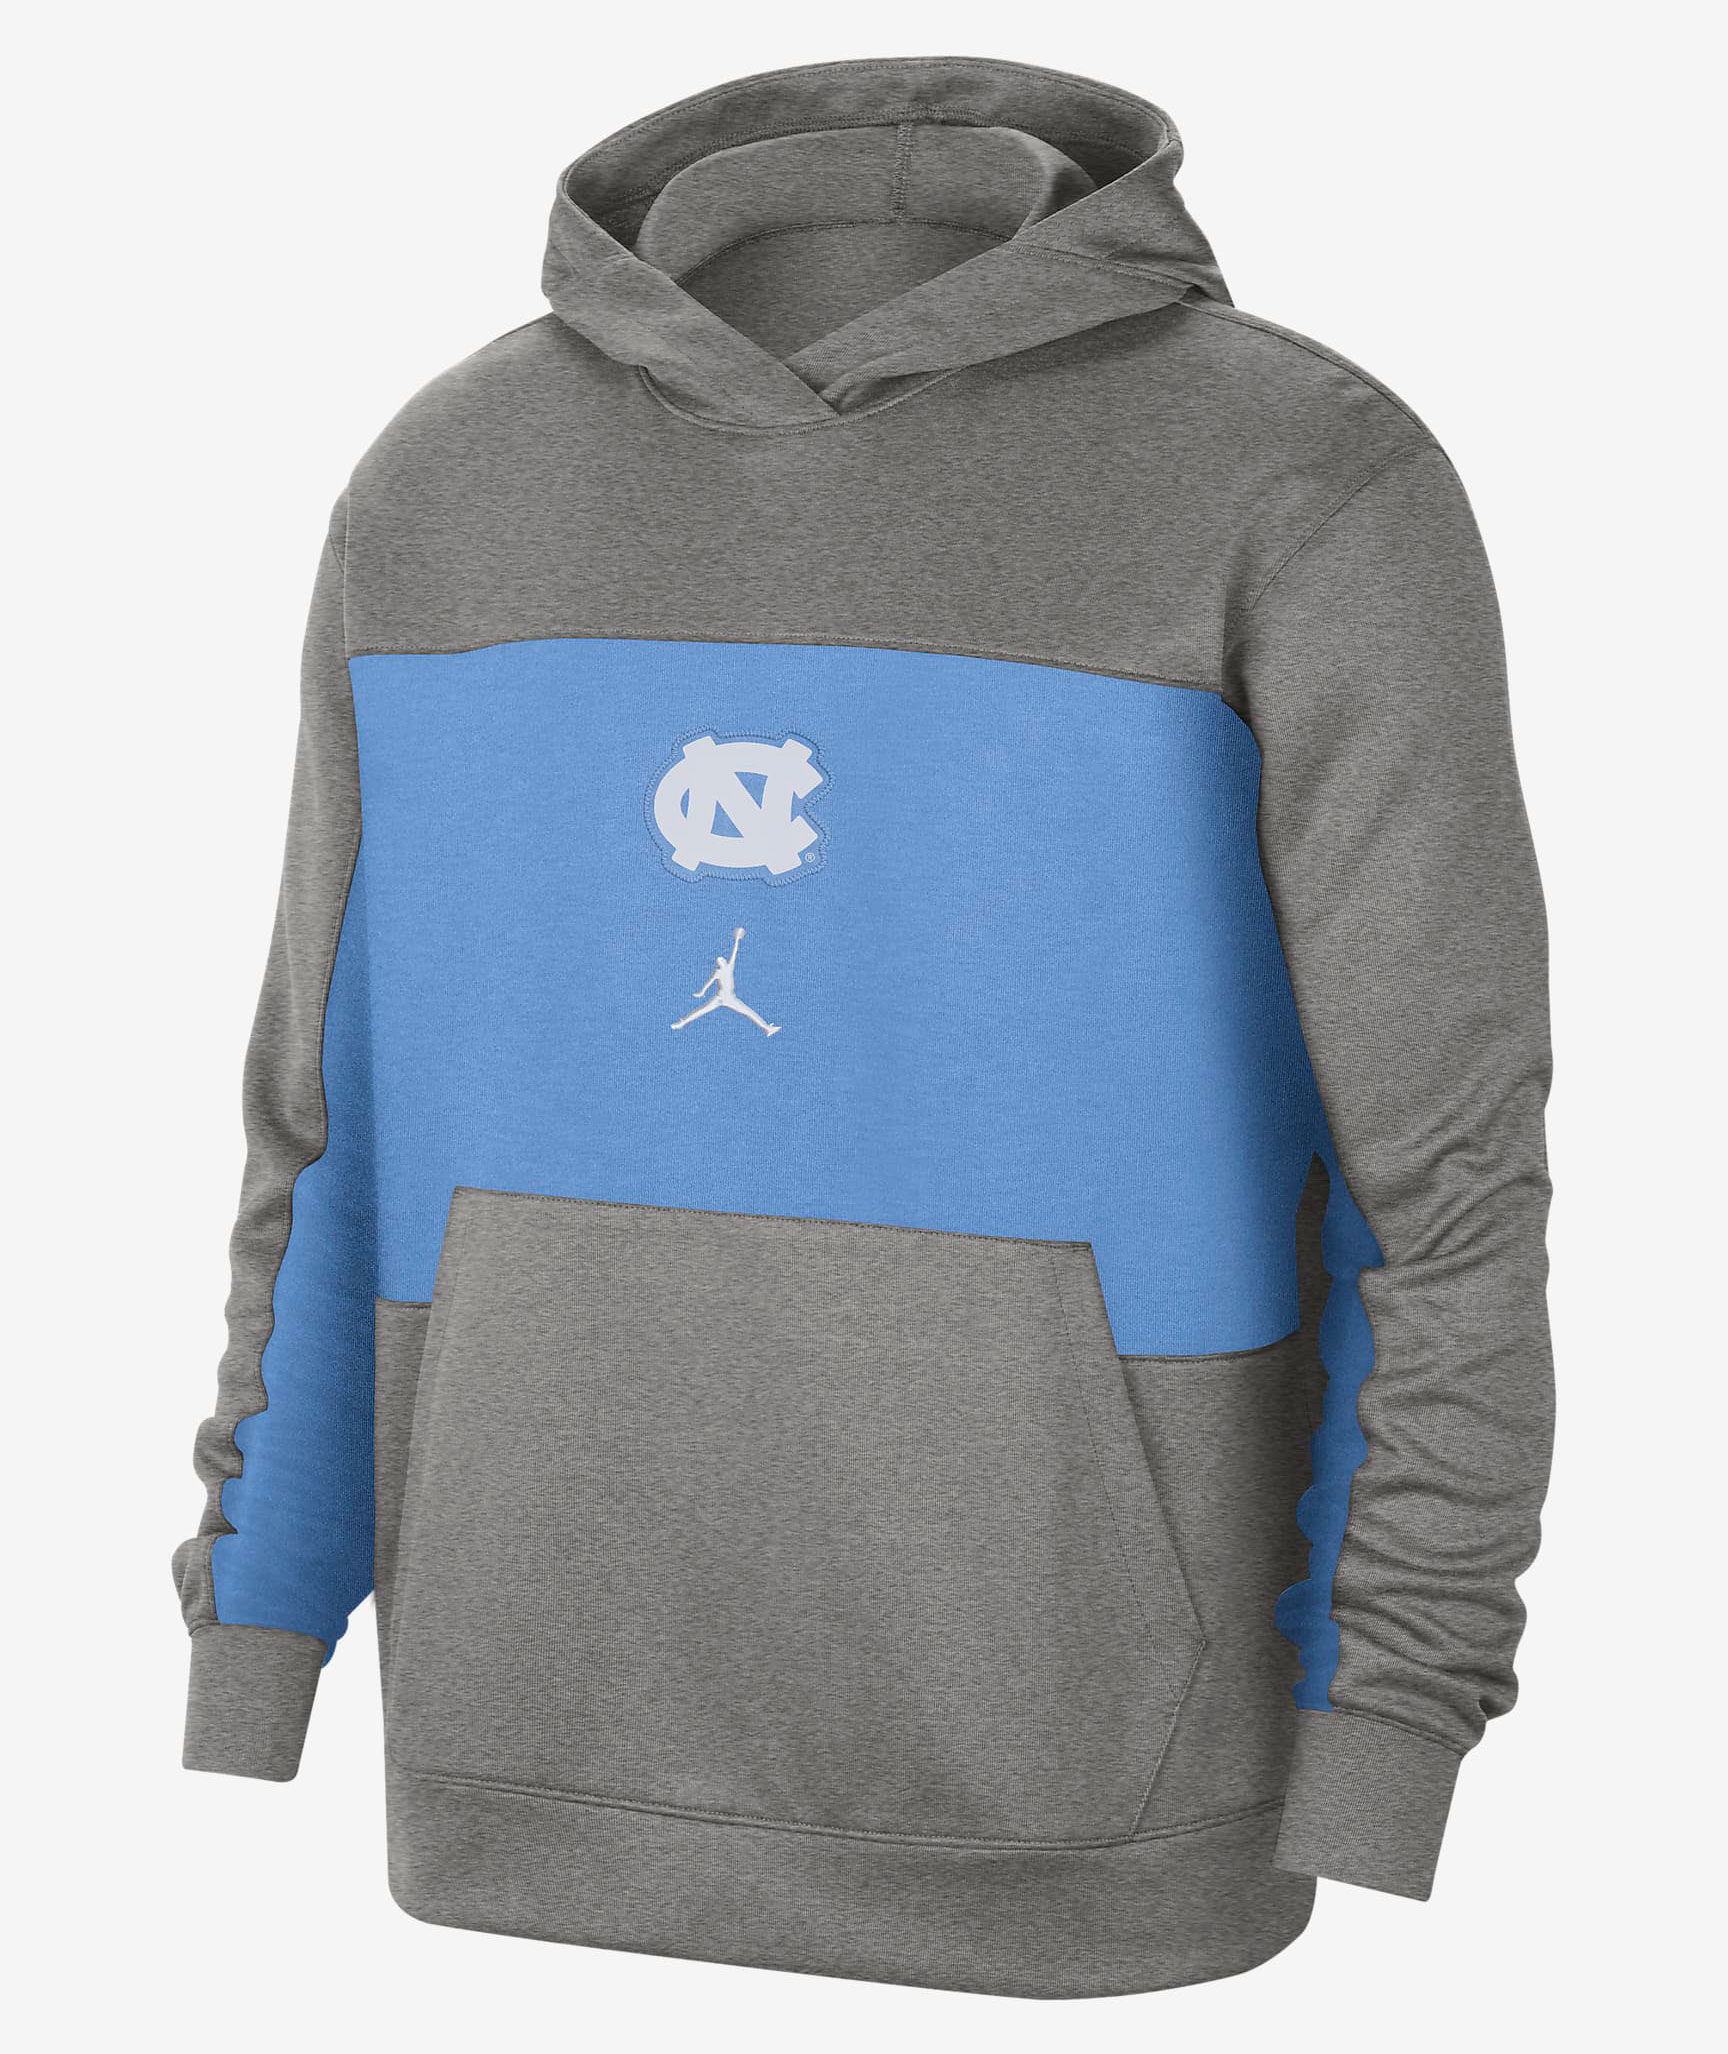 jordan-4-university-blue-grey-unc-hoodie